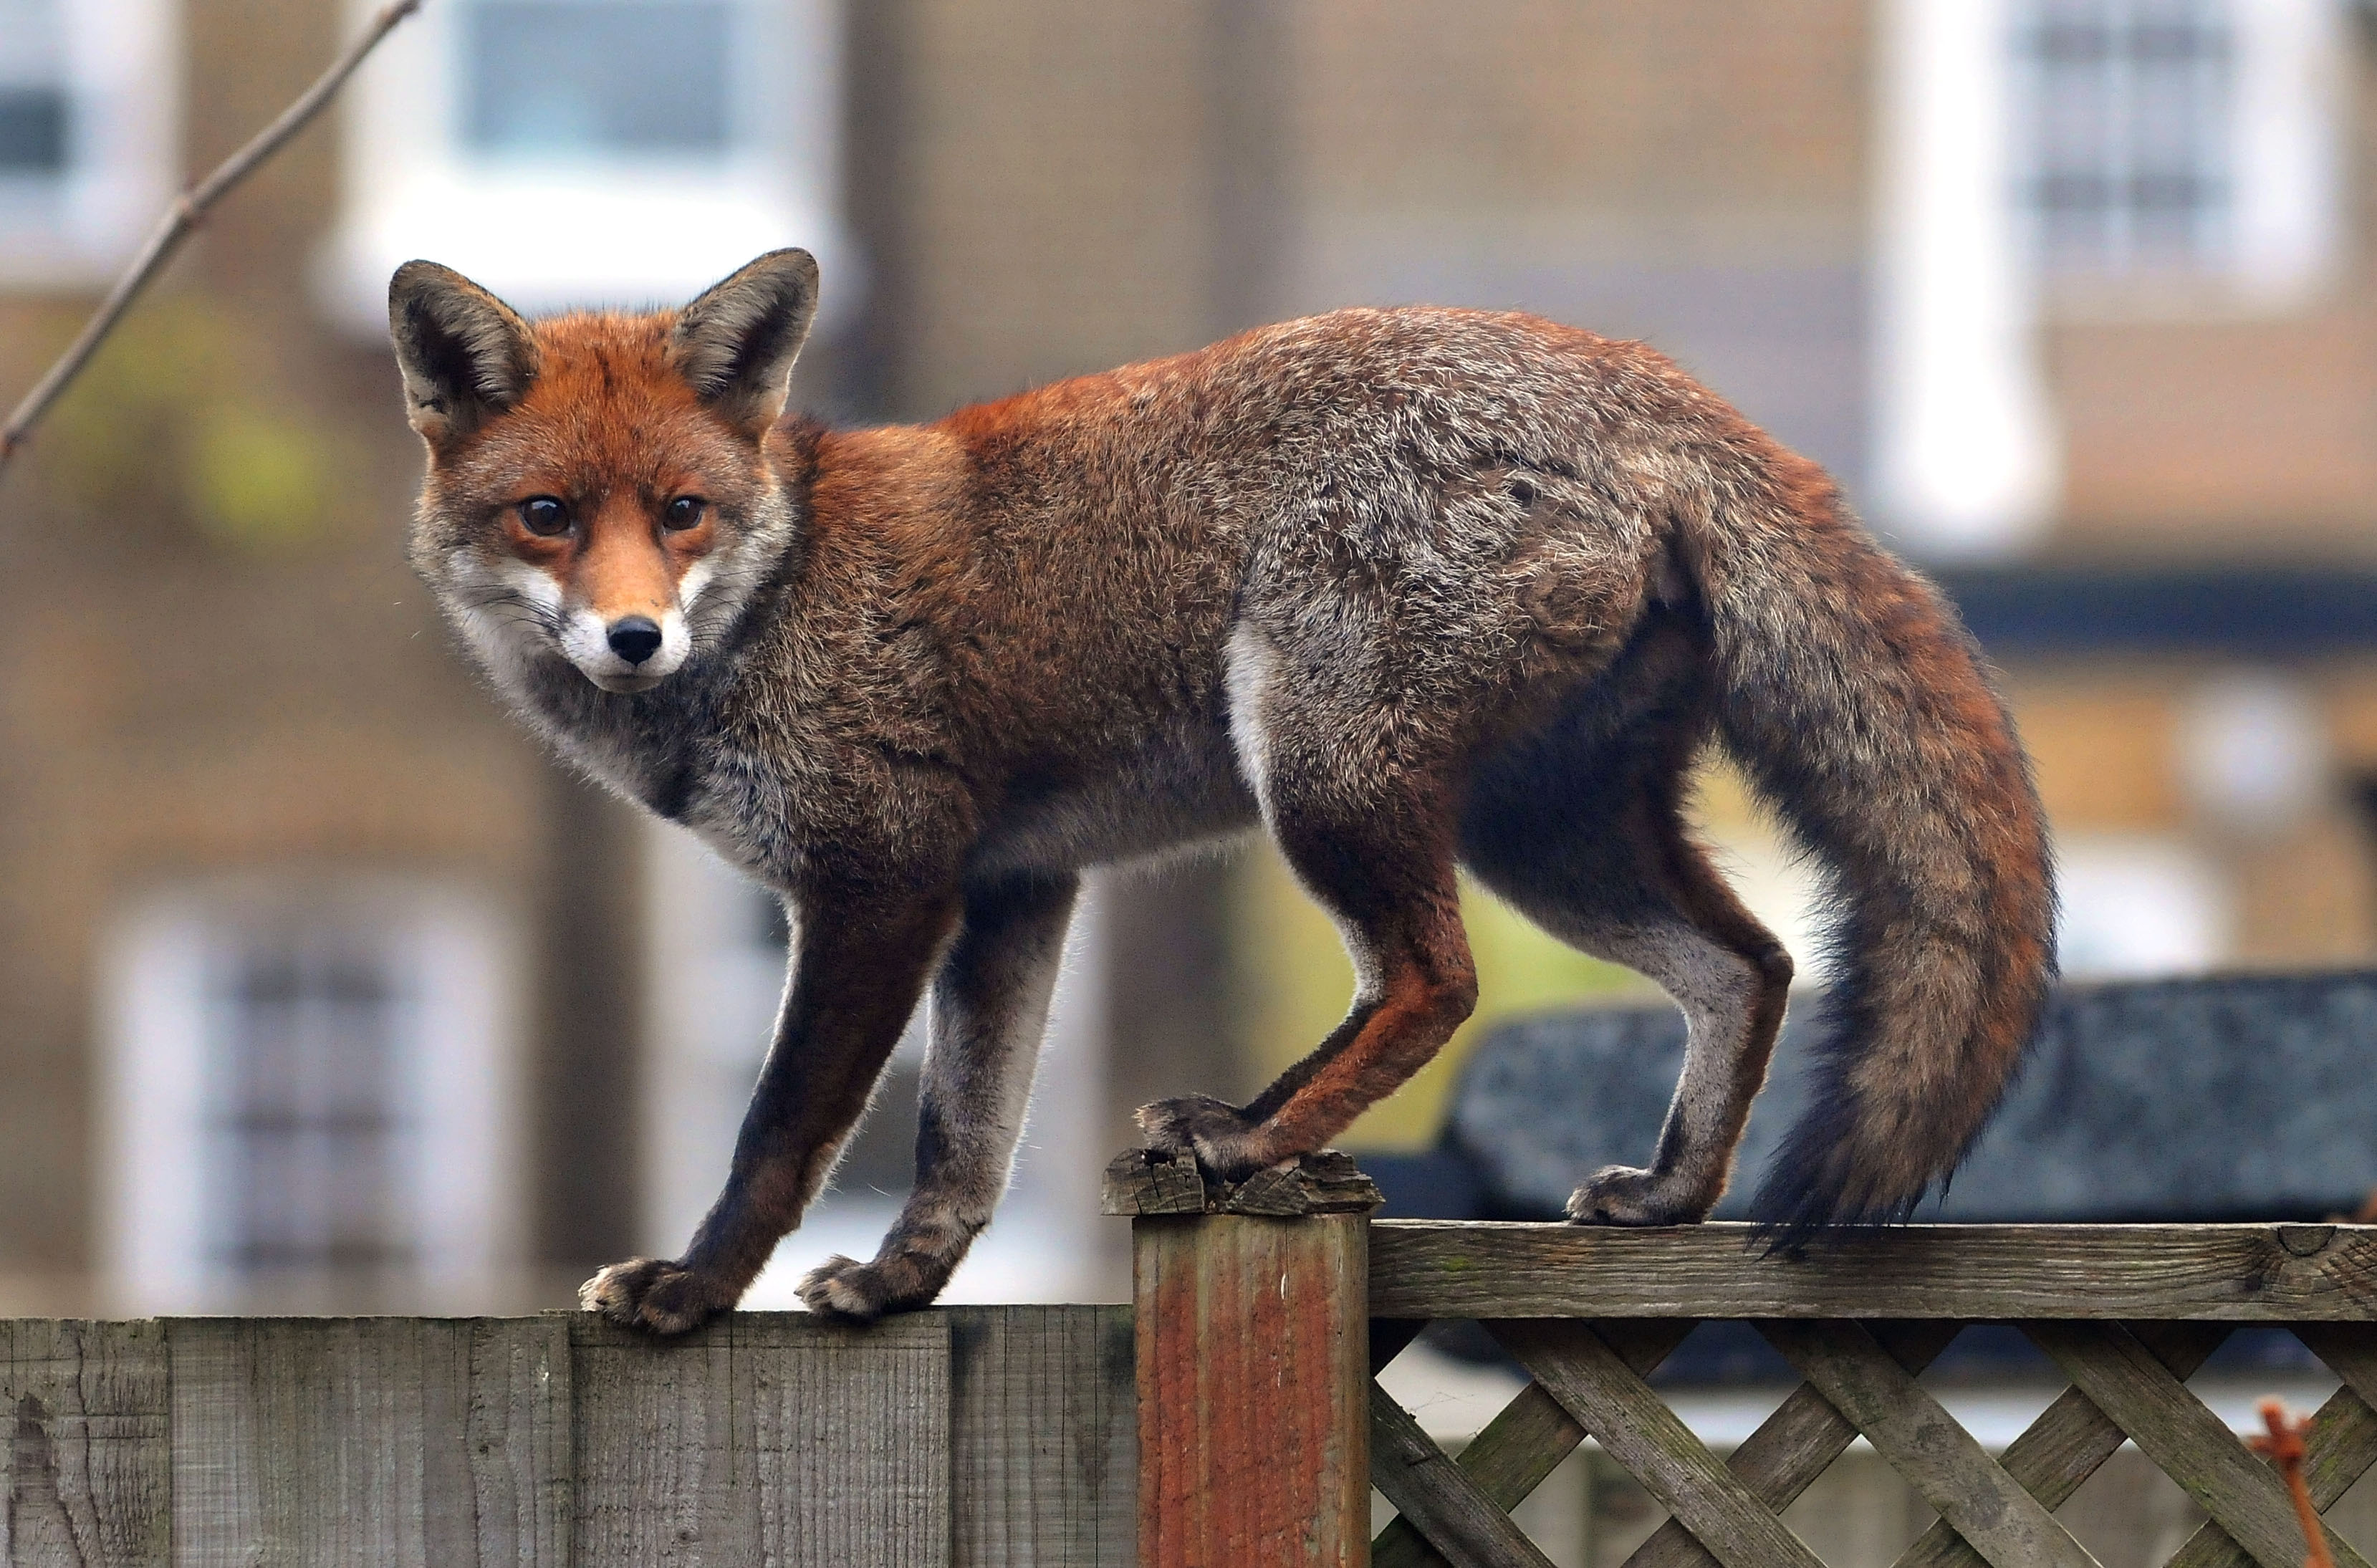 An urban fox prowls along a garden fence in Ealing in London, England.